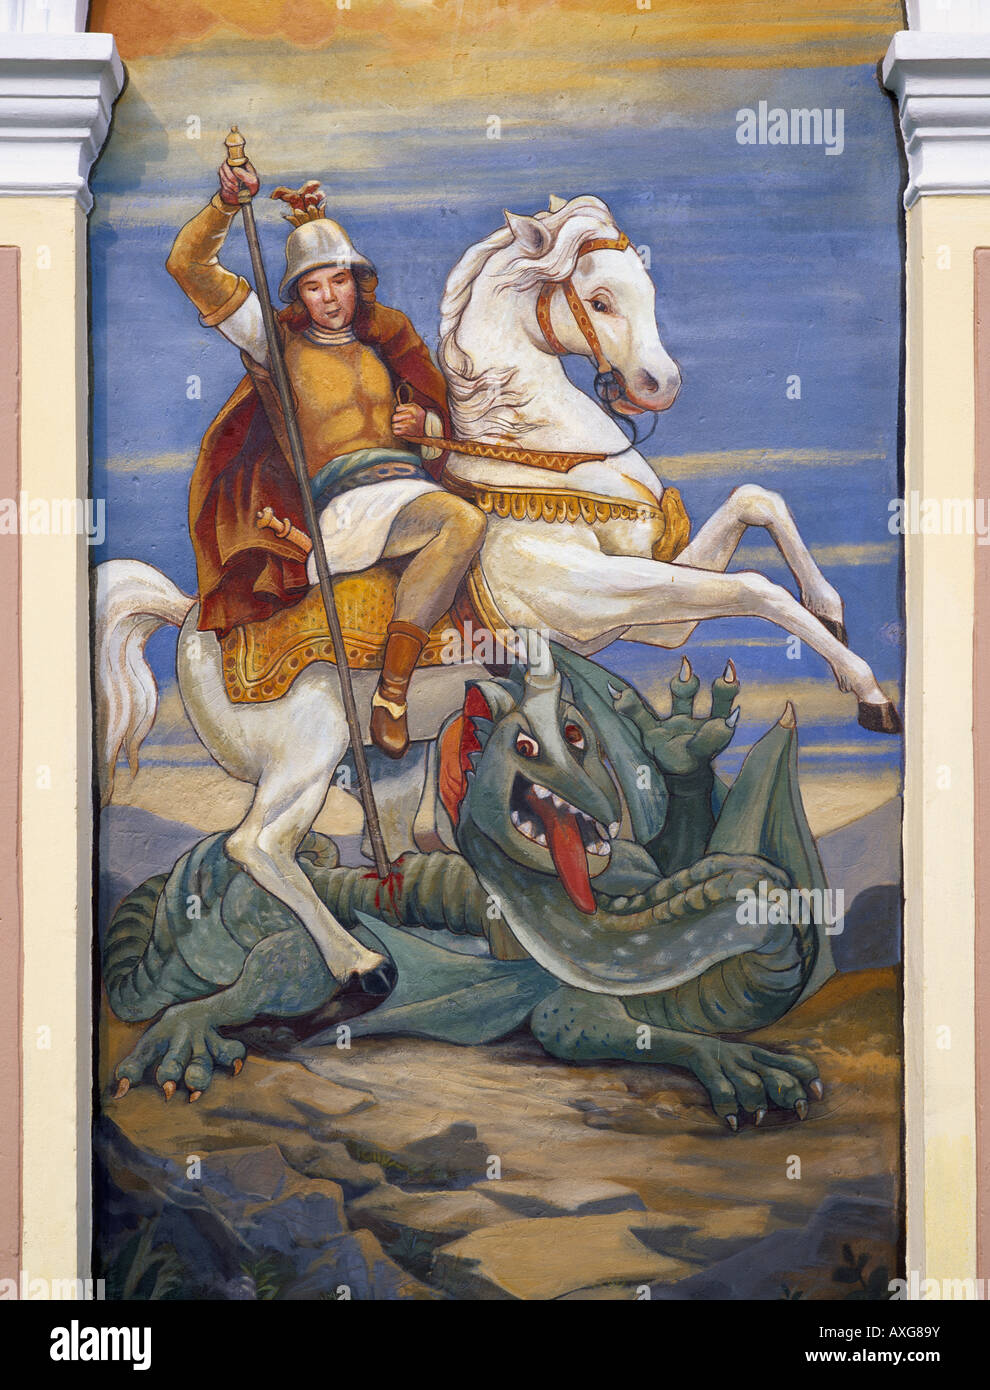 A mural on a roadside shrine depicting St George slaying the dragon. Located near Bled, Gorenjska, Slovenia. - Stock Image